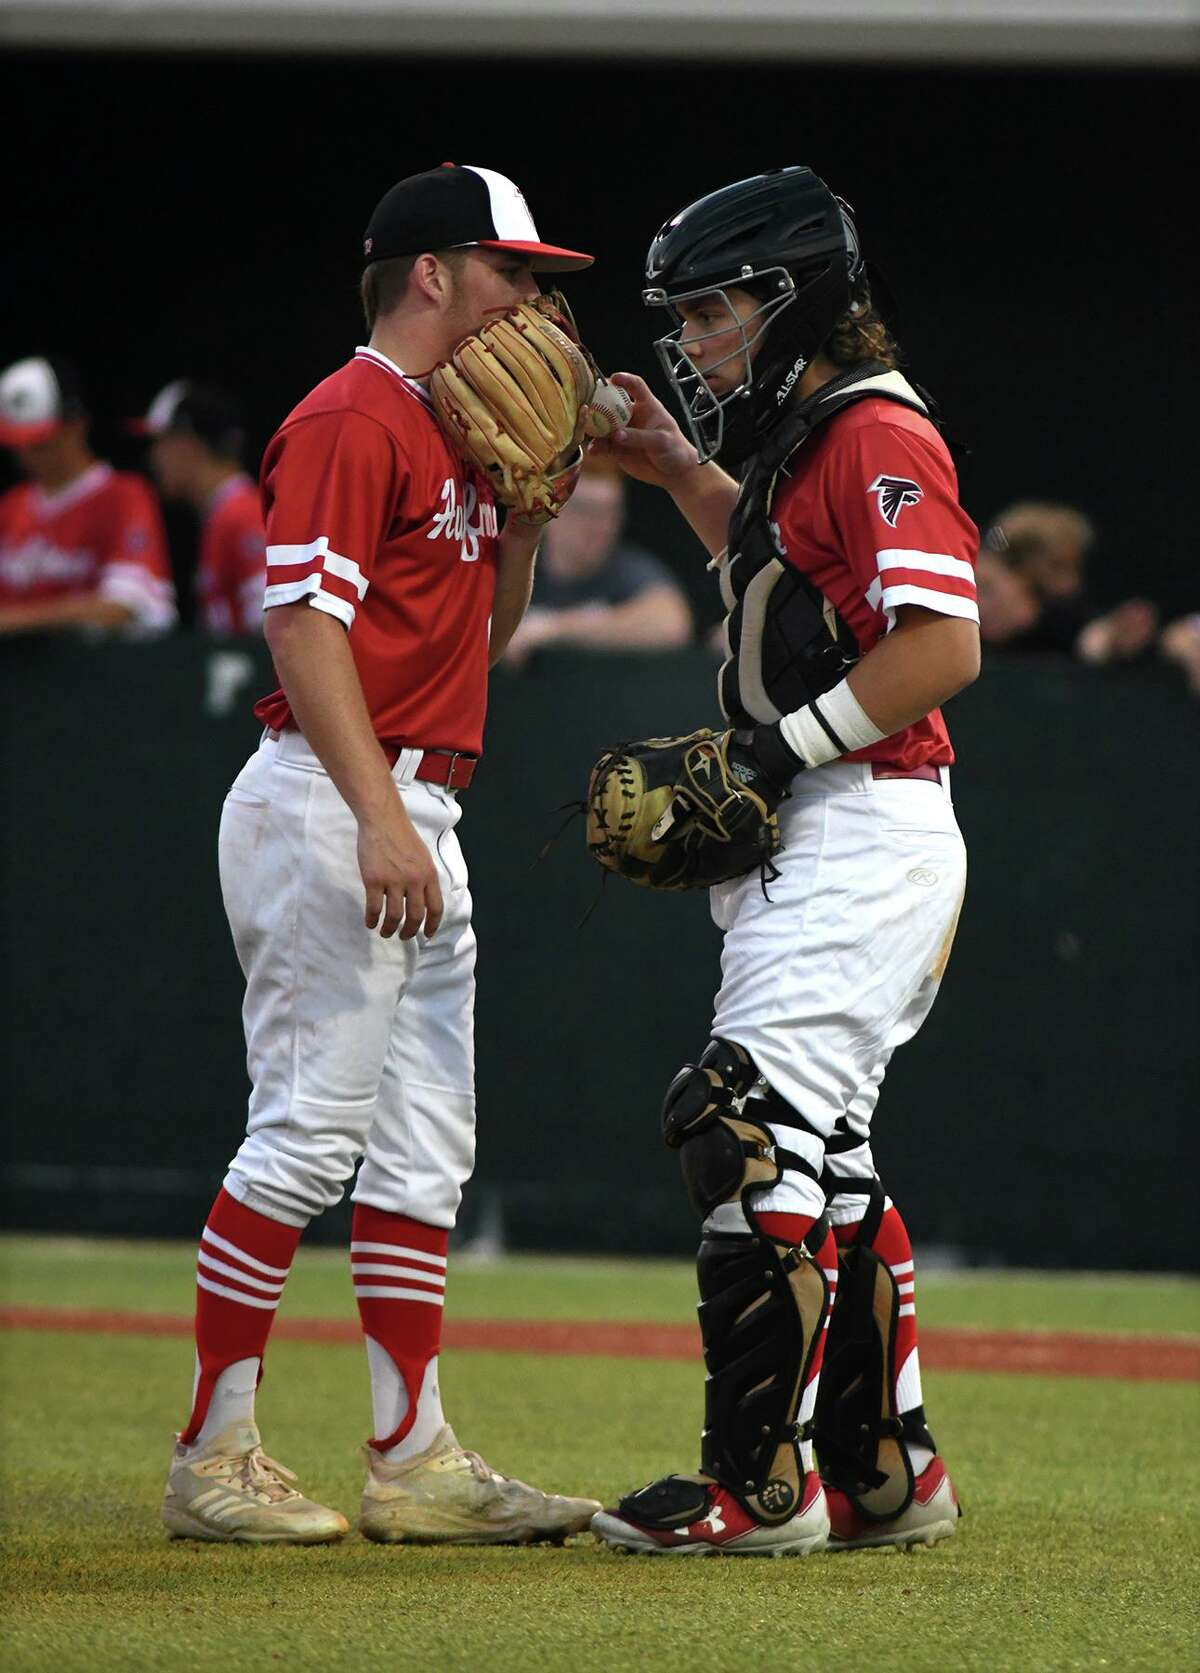 Huffman pitcher Noah Zamora, left, gets the baseball and some words of encouragement from his catcher Grant O'Neal during the bottom of the fourth inning in Game One of their Region IV-4A Semi-Final Playoff Series at Madisonville High School on May 23, 2019.